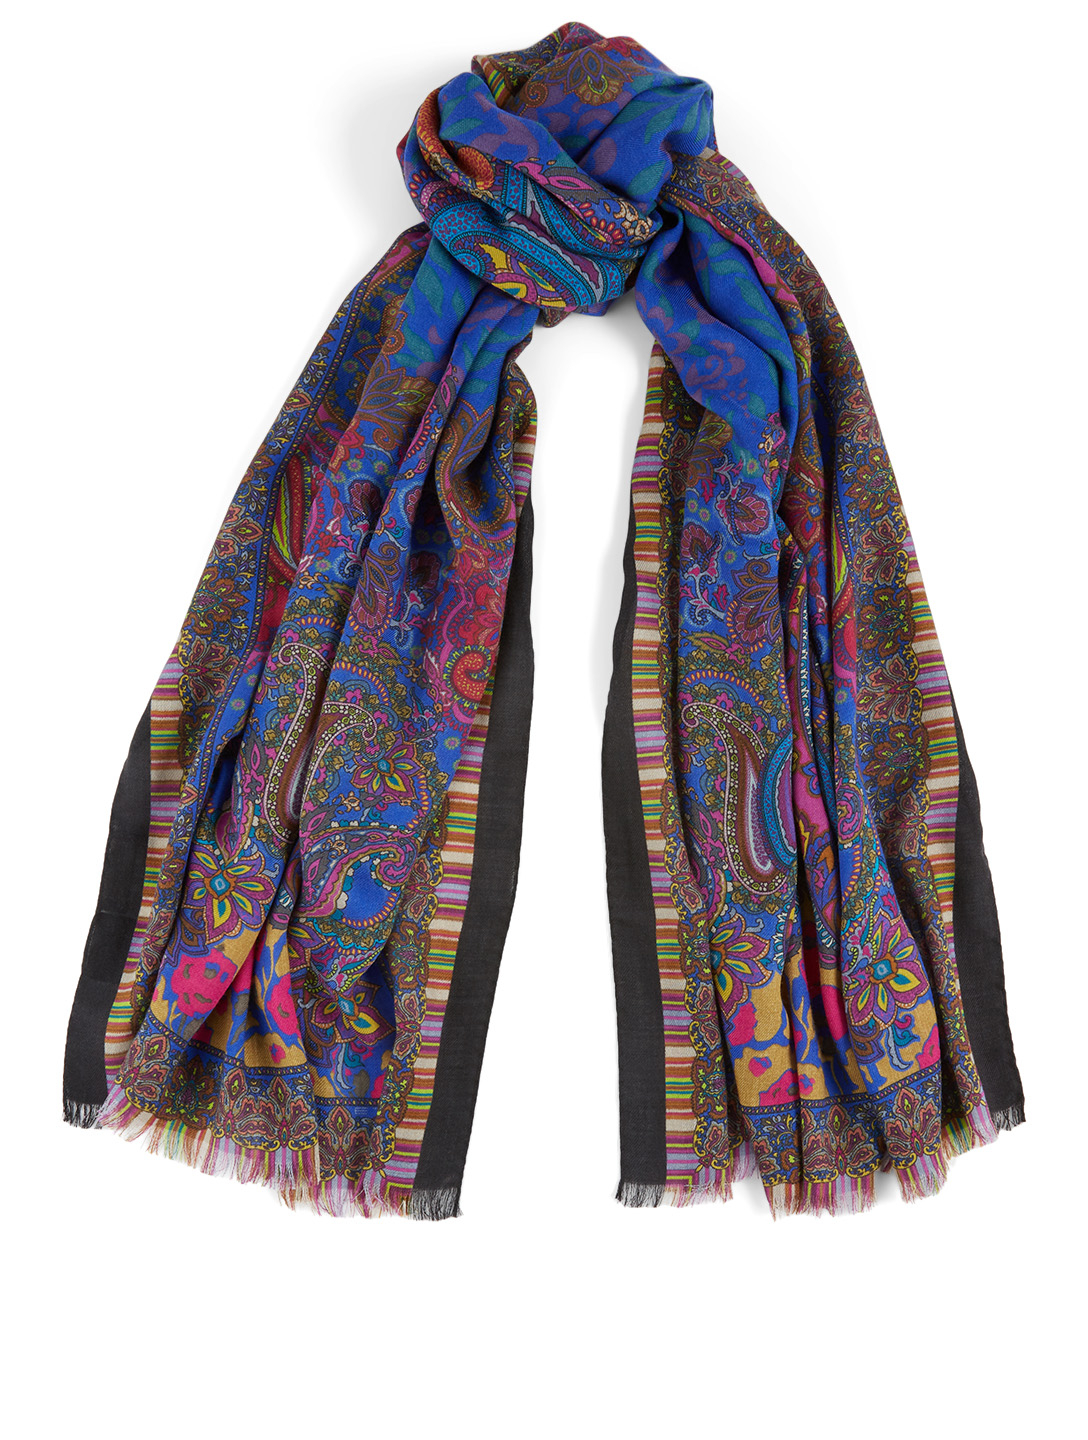 ETRO Shaal-Nur Wool And Silk Scarf In Paisley Print Women's Blue